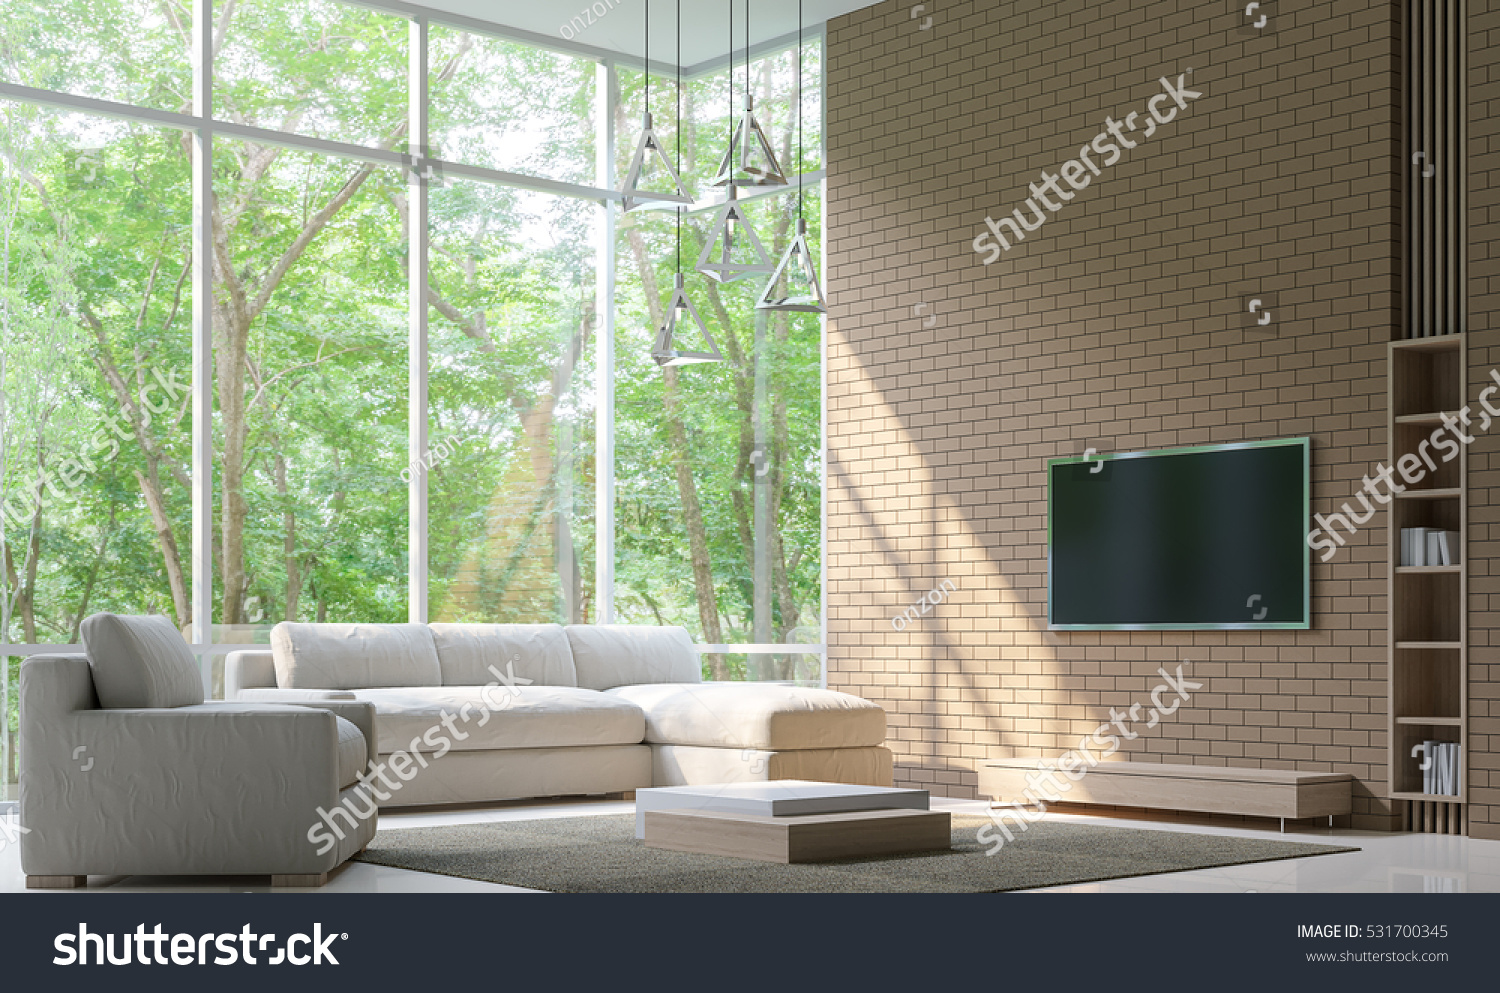 modern living room decorate wall brick stock illustration